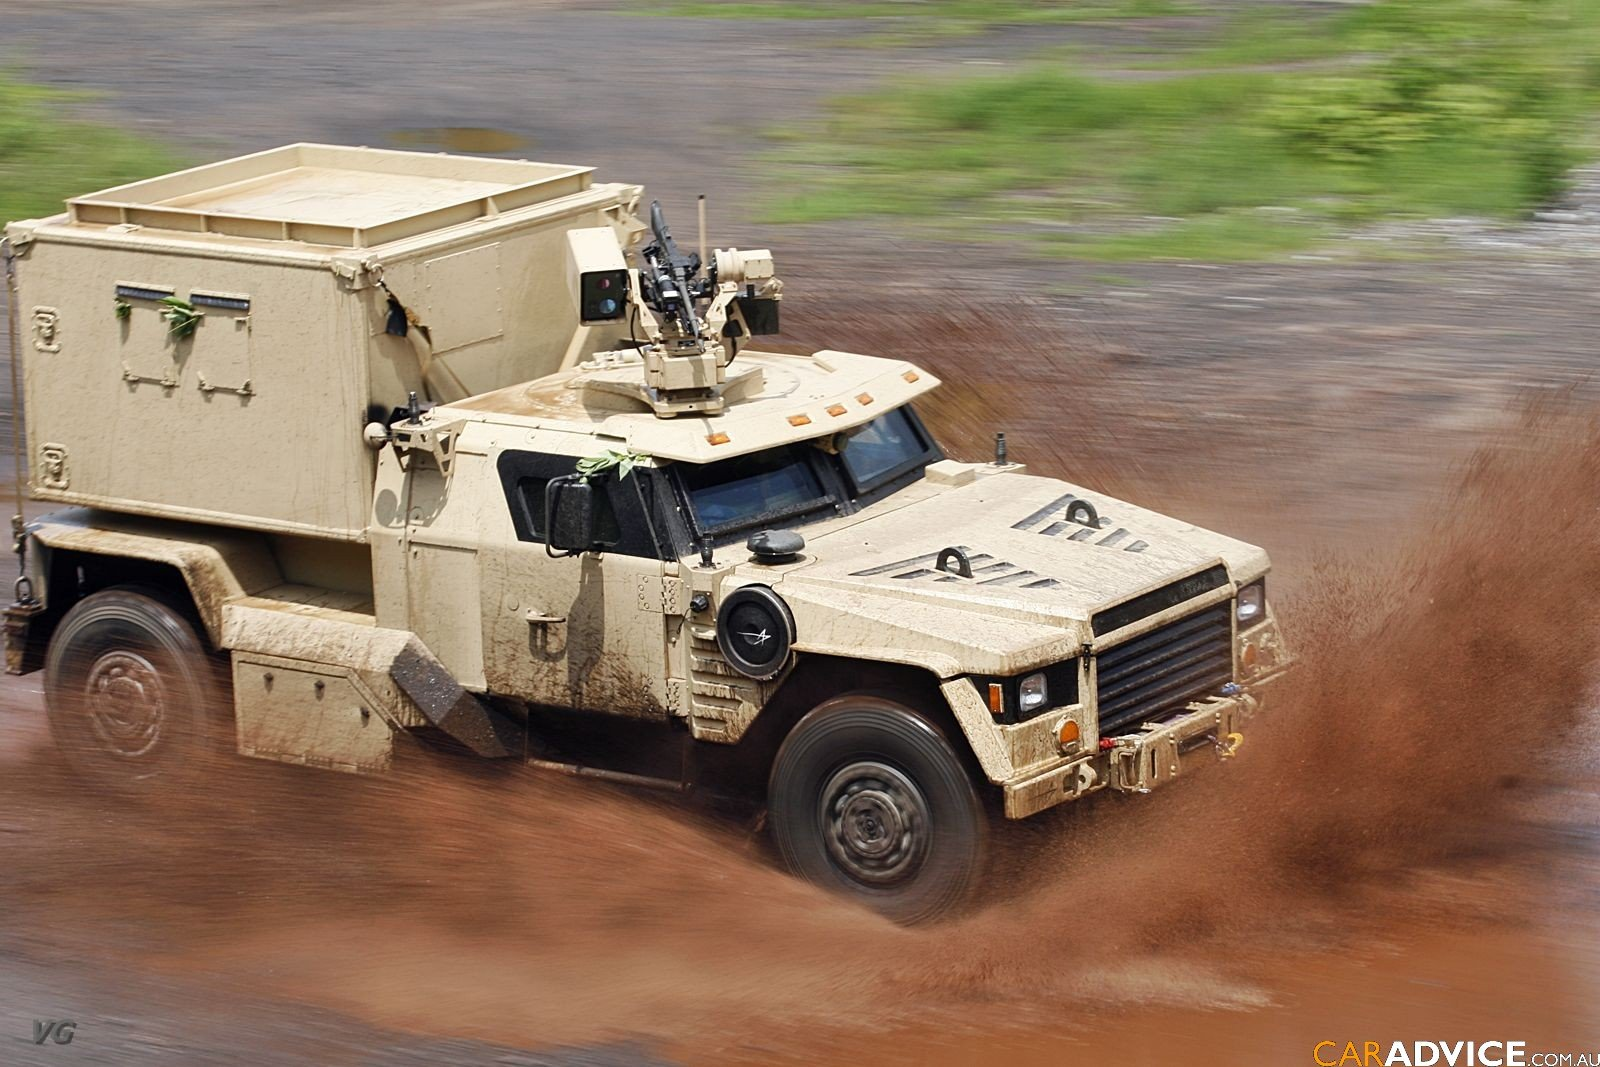 Joint Light Tactical Vehicle (JLTV) - Photos (1 of 16)